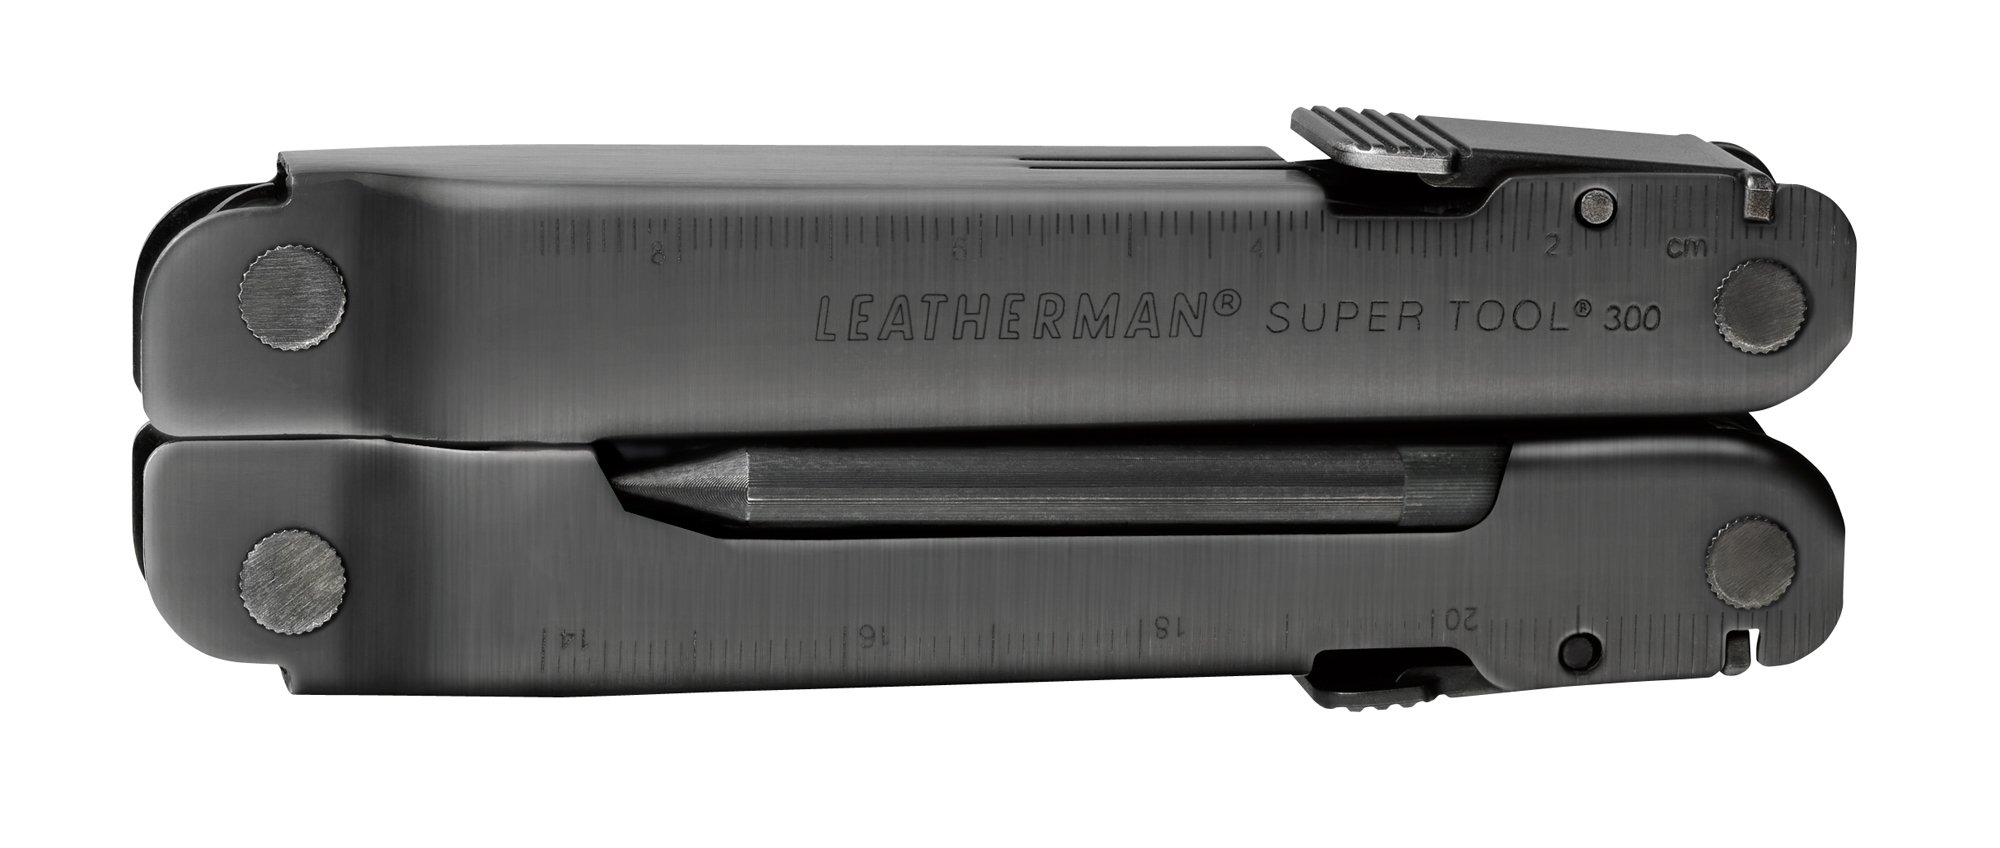 LEATHERMAN - Super Tool 300 EOD Multitool, Black with MOLLE Black Sheath by LEATHERMAN (Image #9)